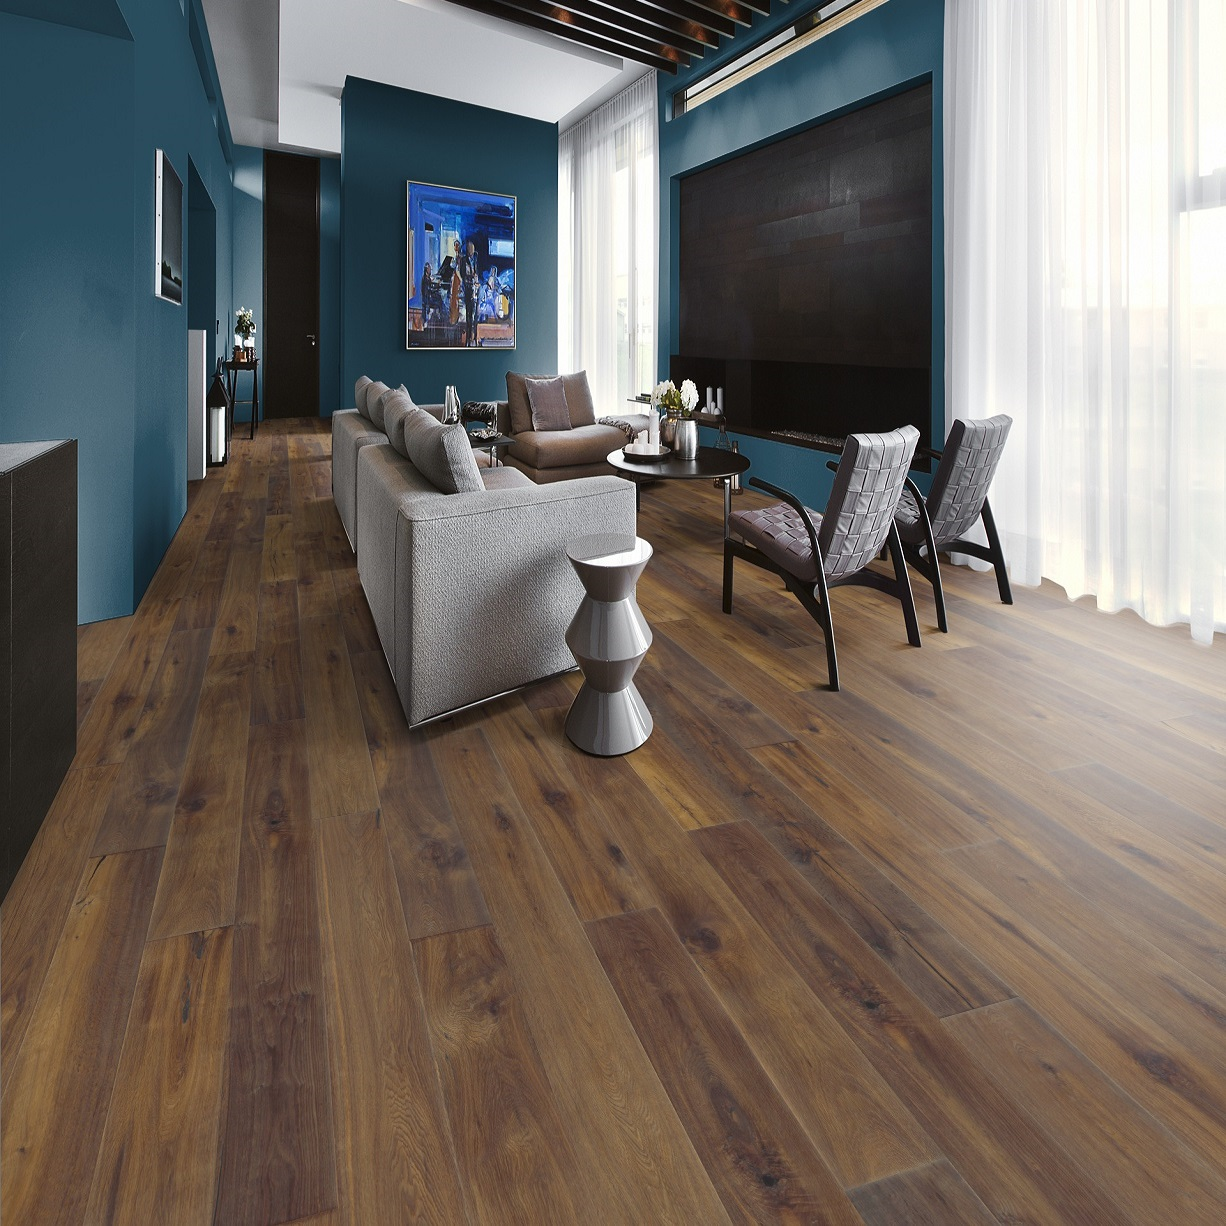 Khars Artisan - Kahrs Solid & Engineered Hardwood Flooring QualityFlooring4Less.com